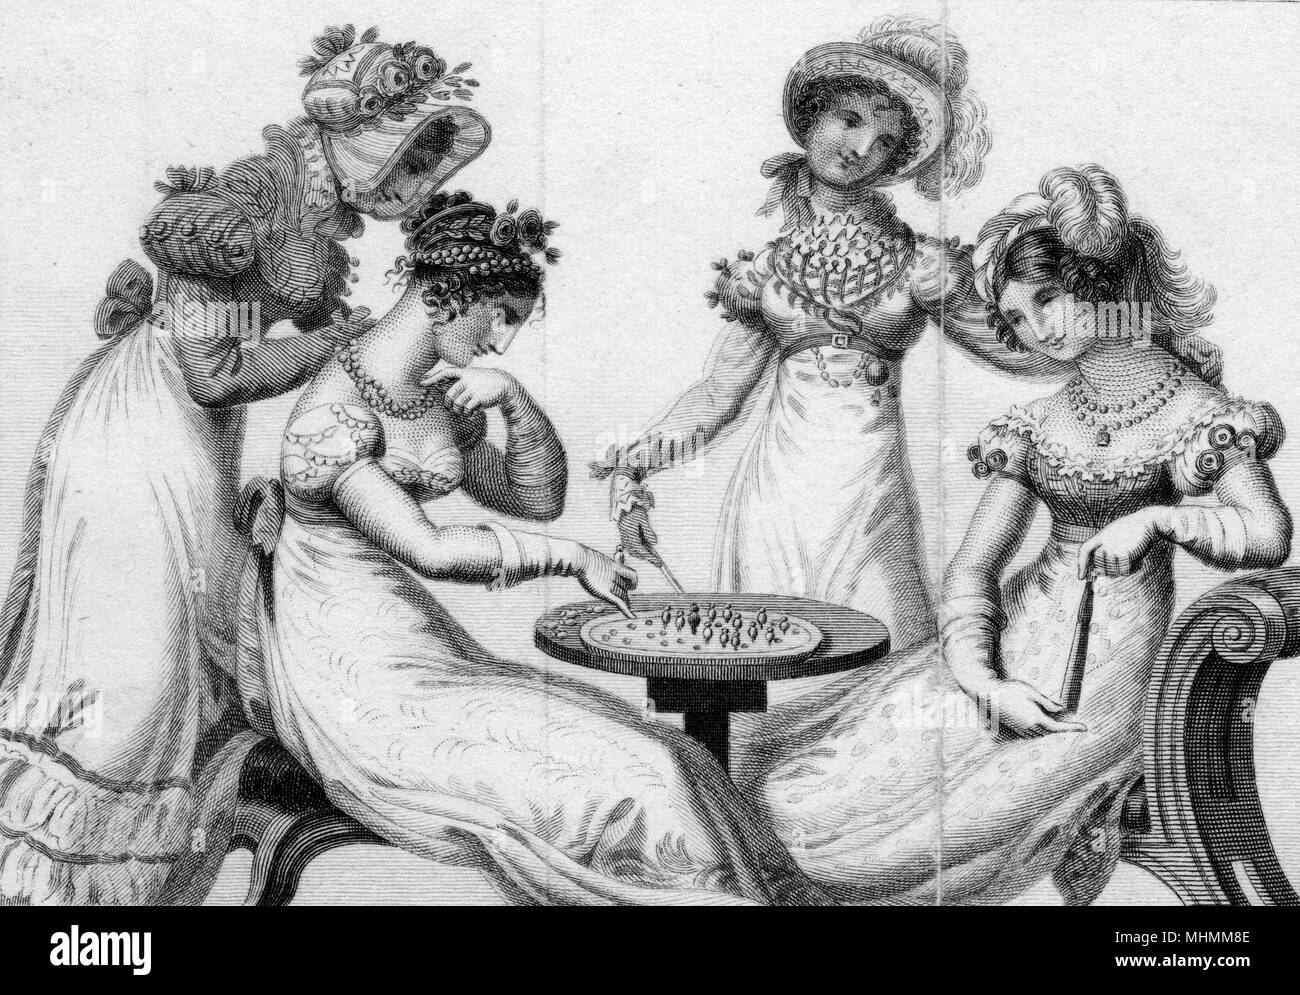 Four fashionable ladies play solitaire.       Date: Early 19th century - Stock Image